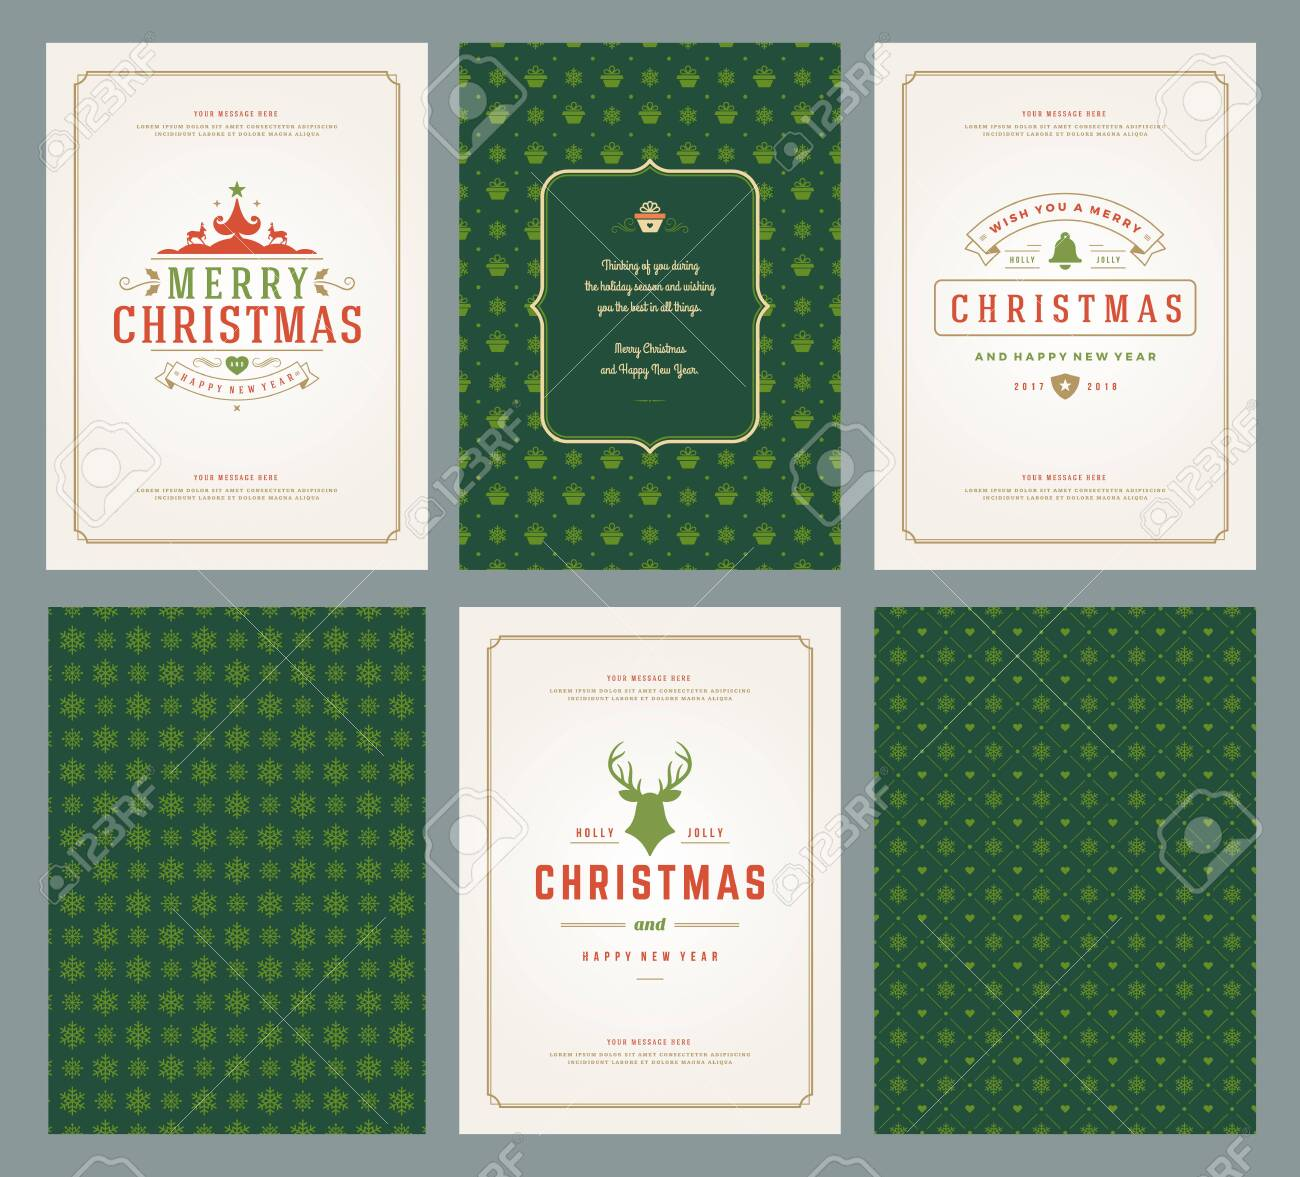 Merry Christmas greeting cards templates and patterns backgrounds, with place for Christmas holidays wish typographic design.Vector illustration. - 122108553